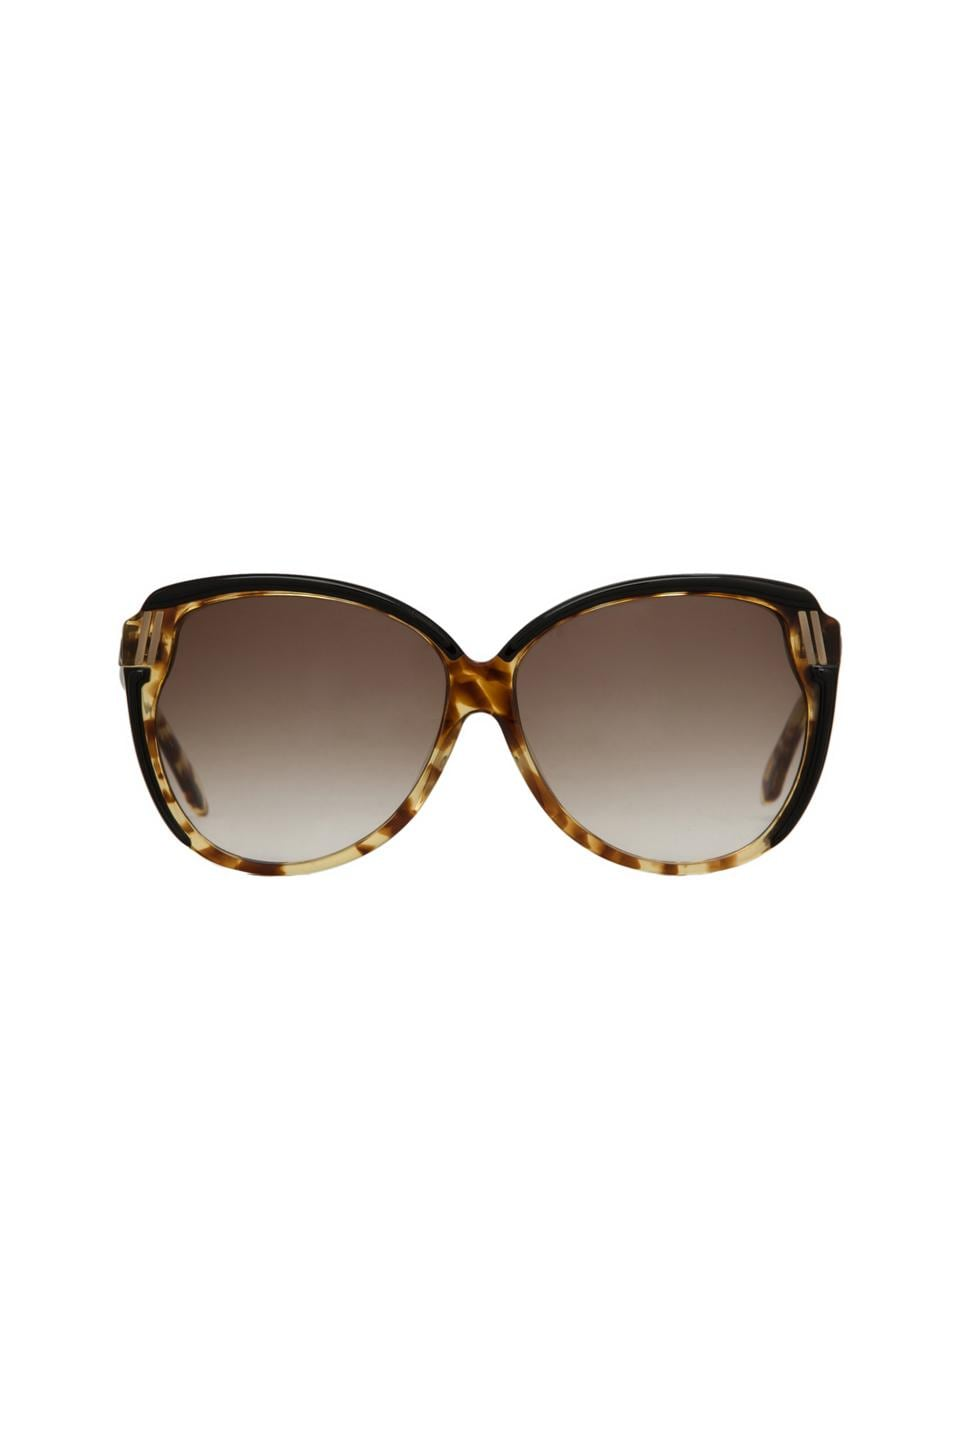 House of Harlow 1960 House of Harlow Ella Sunglasses in Tortoise/Black